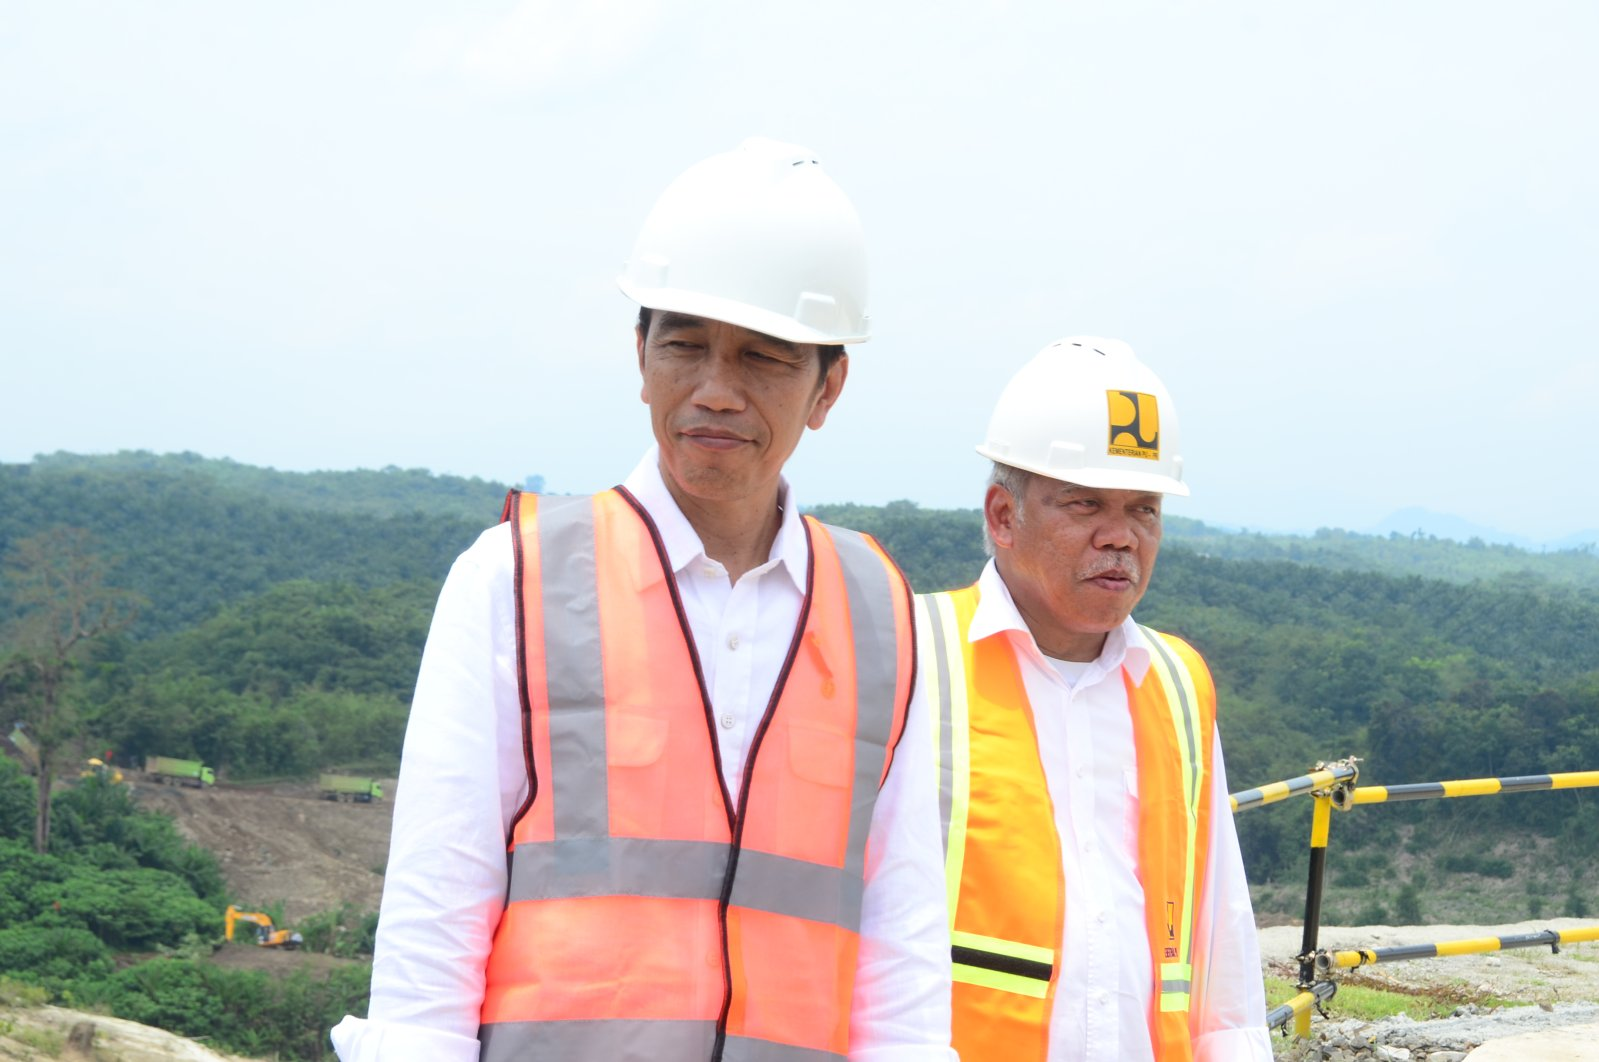 Indonesian Minister for Public Works and Housing Mochamad Basuki Hadimuljono (R) accompanies President Joko Widodo (L) on a visit to Karian Dam in Banten Province, Indonesia, March 10, 2017. (Courtesy of the Indonesian Embassy in Ankara)